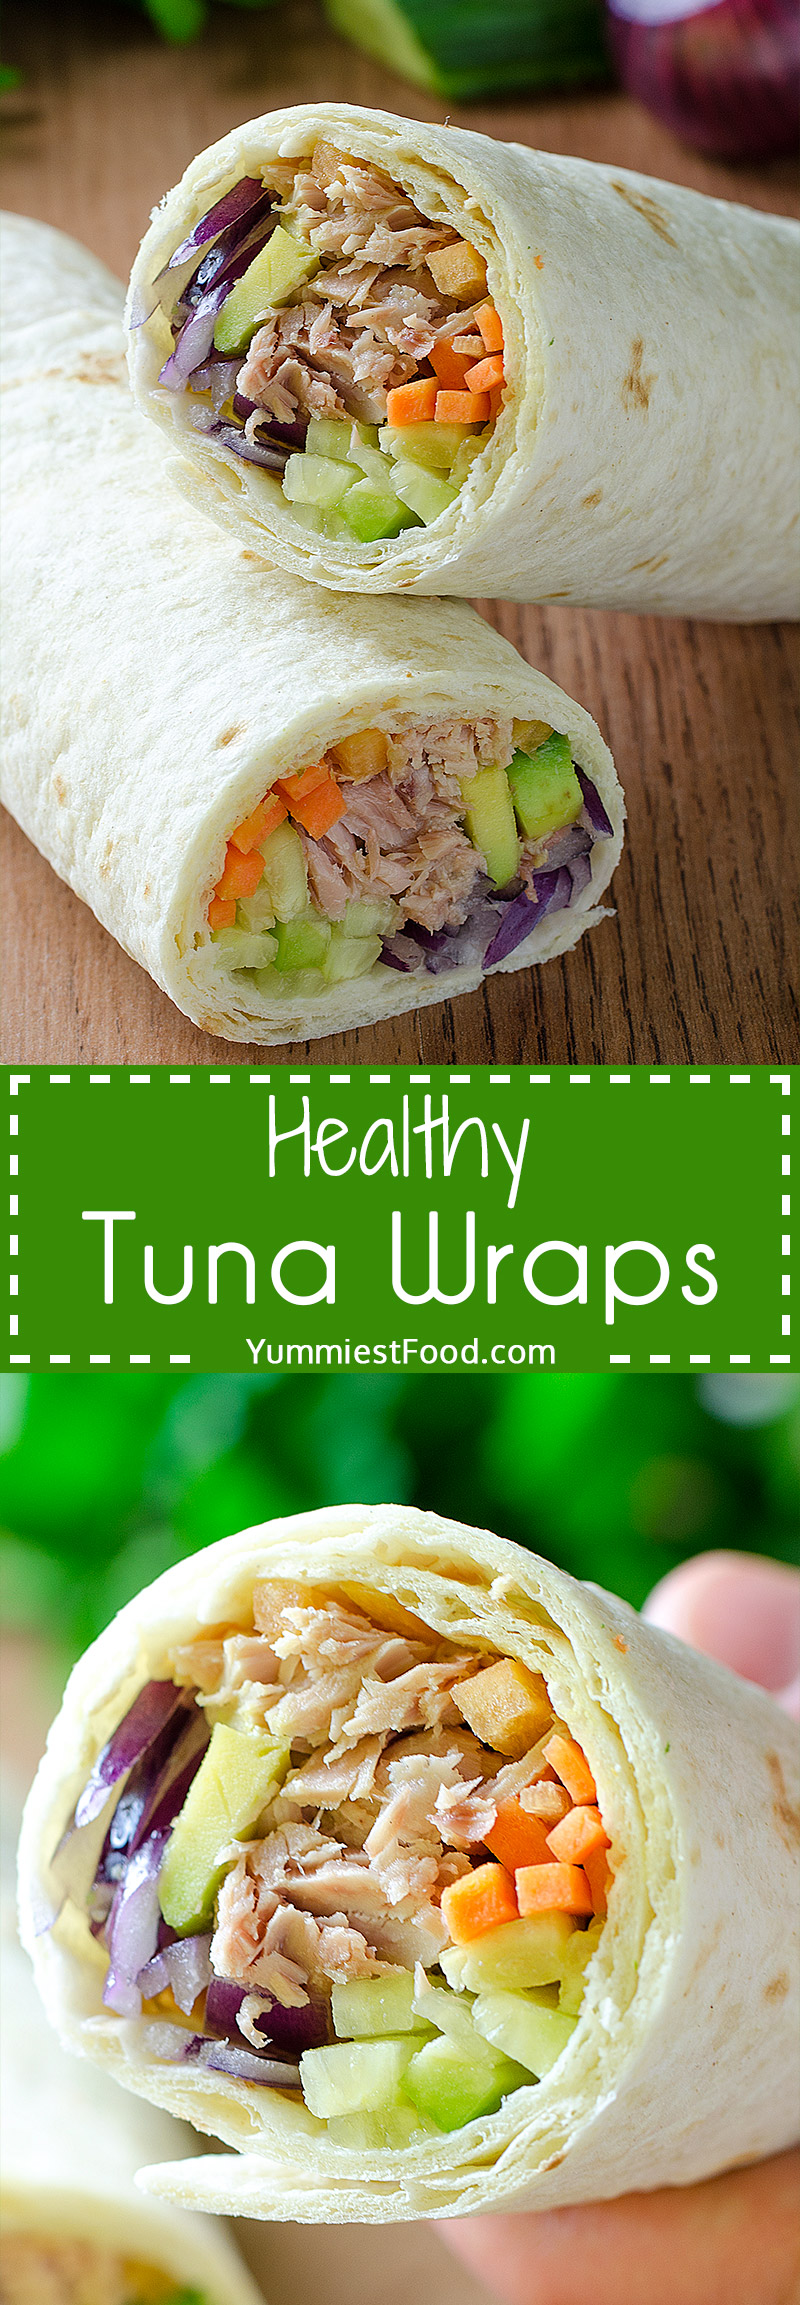 Healthy Tuna Wraps - For 10 minutes you can make so healthy, easy and tasty recipe.